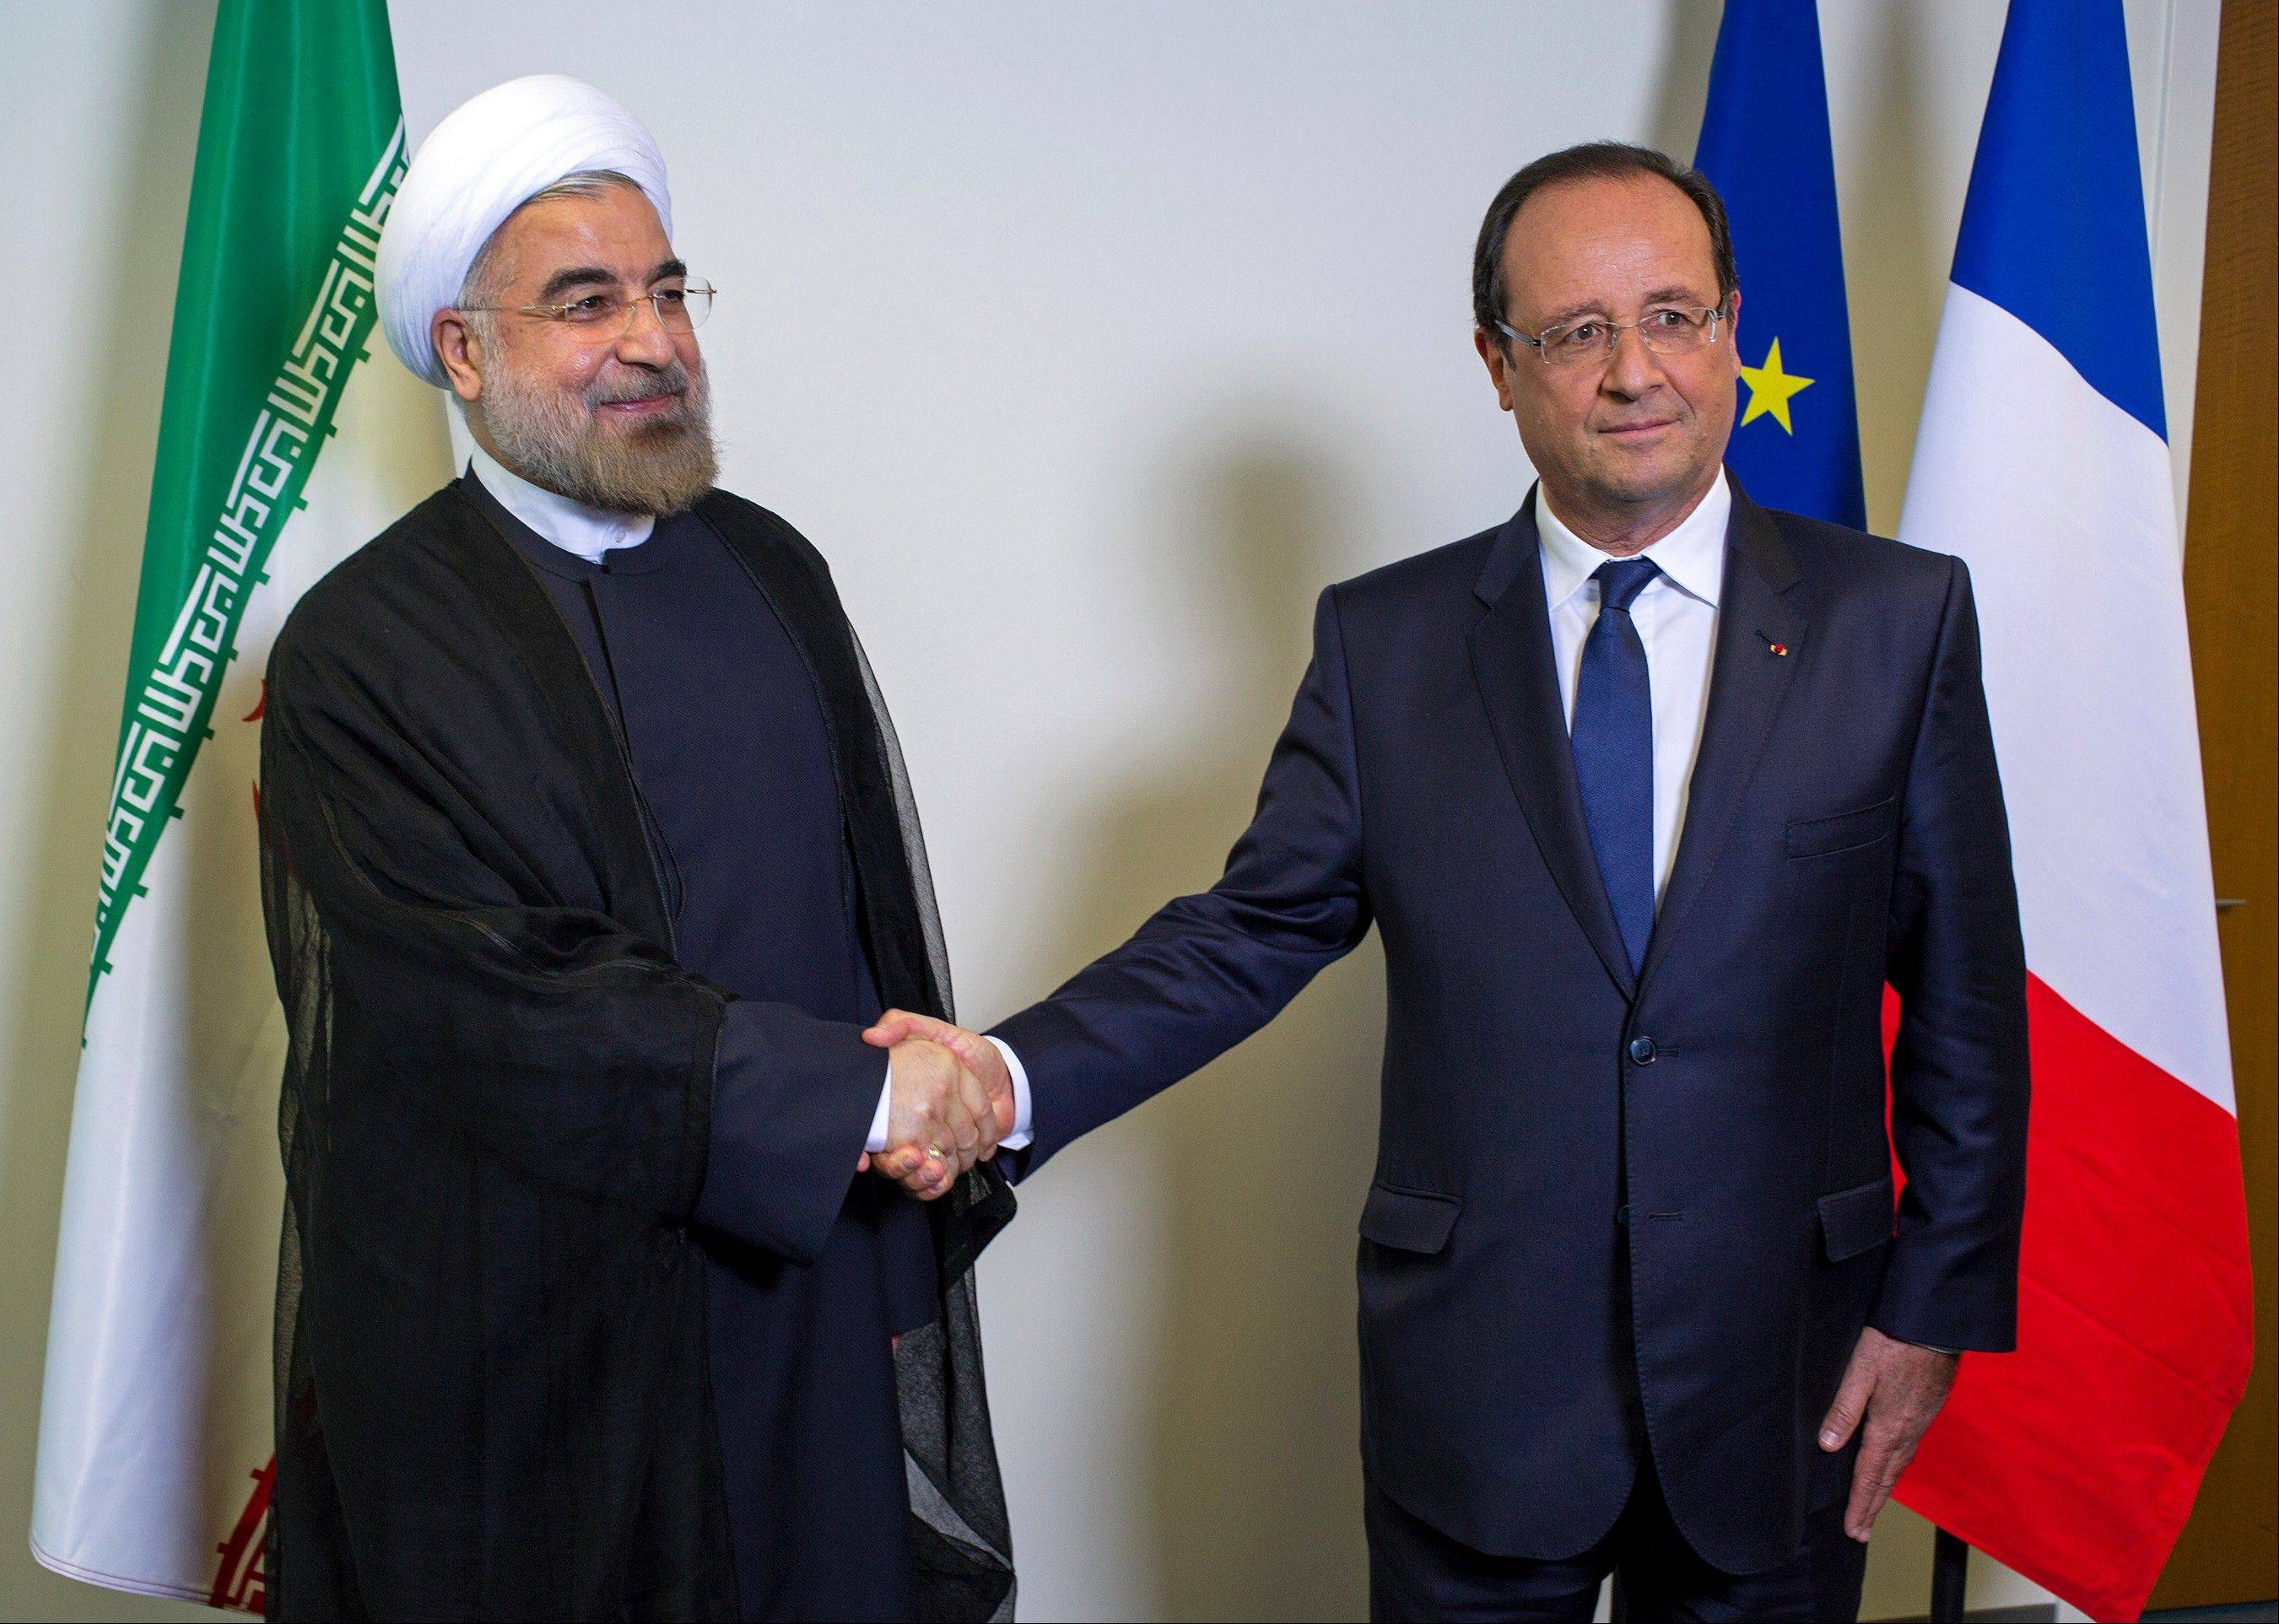 Iranian President Hasan Rouhani shakes hands with French President Francois Hollande during the 68th session of the United Nations General Assembly at